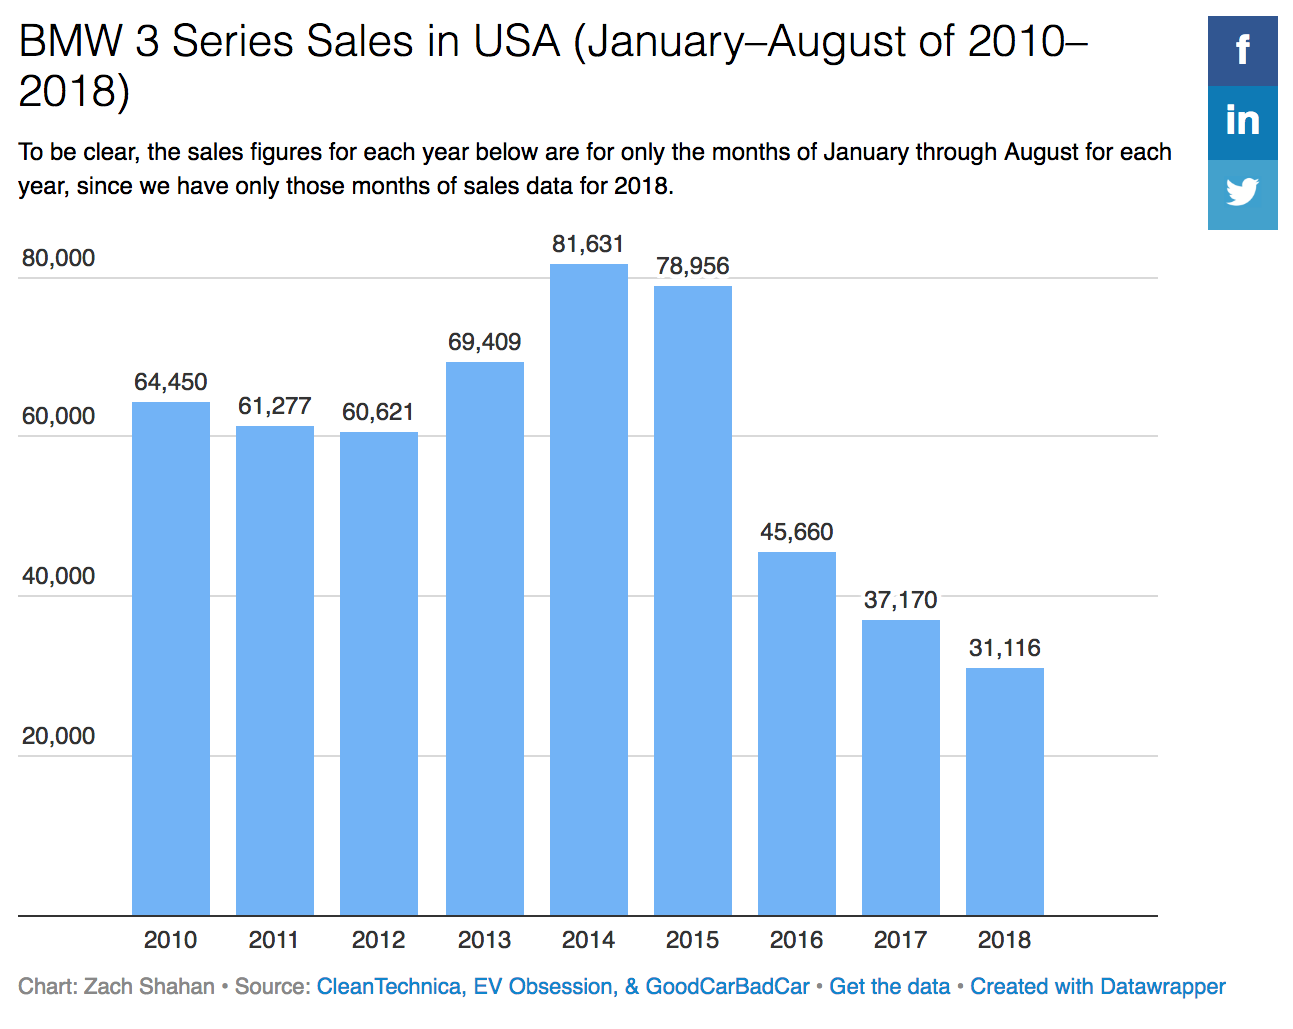 cleantechnica.com - Zachary Shahan - US BMW 3 Series Sales Have Collapsed